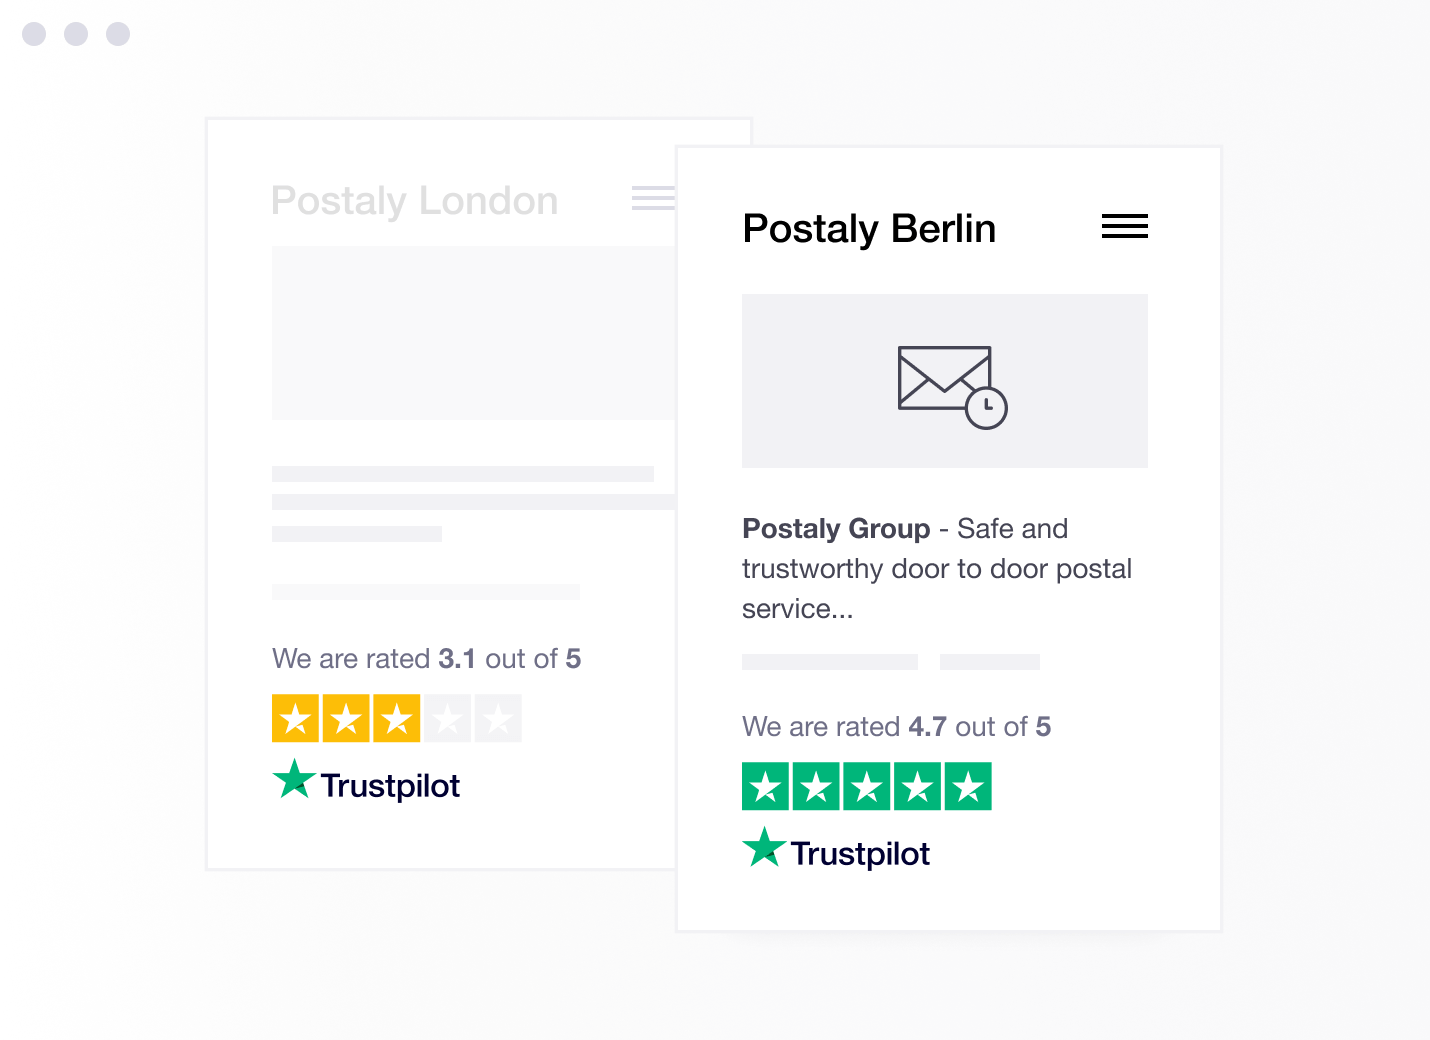 Local TrustBoxes increase conversions - Trustpilot Location Reviews